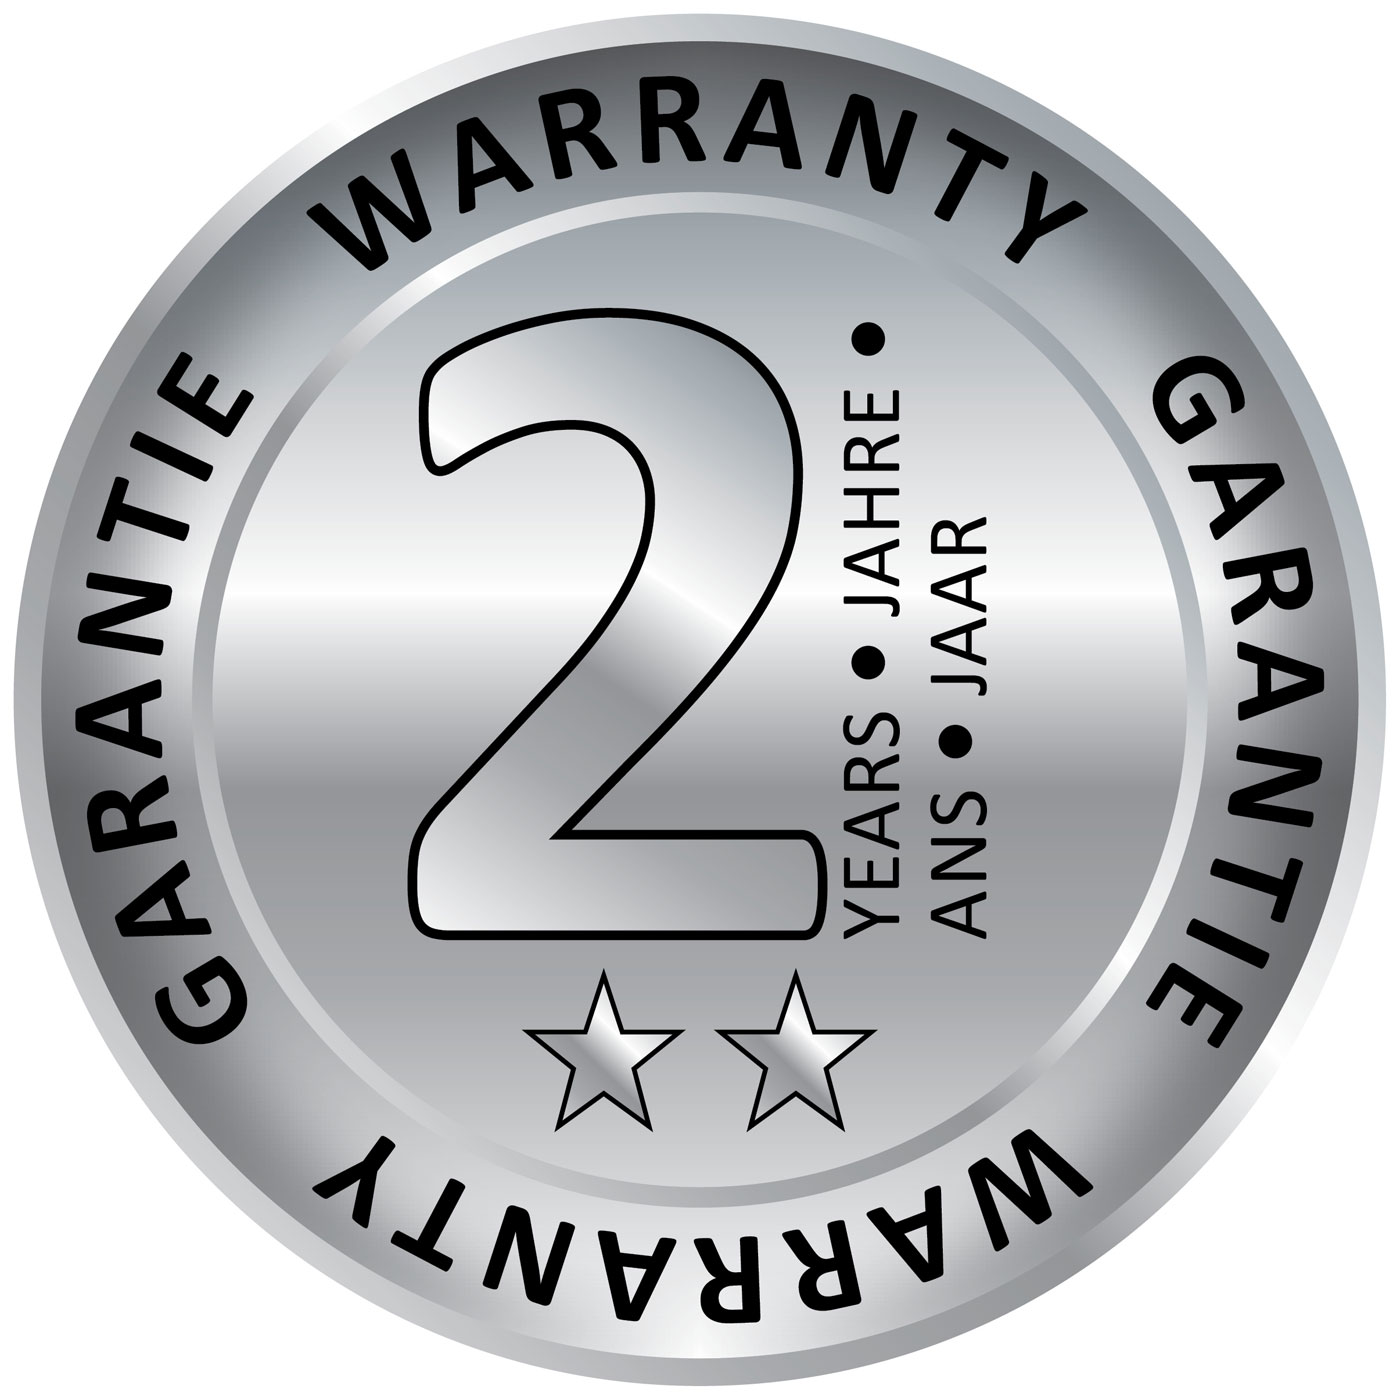 KINSHOFER warranty sticker final